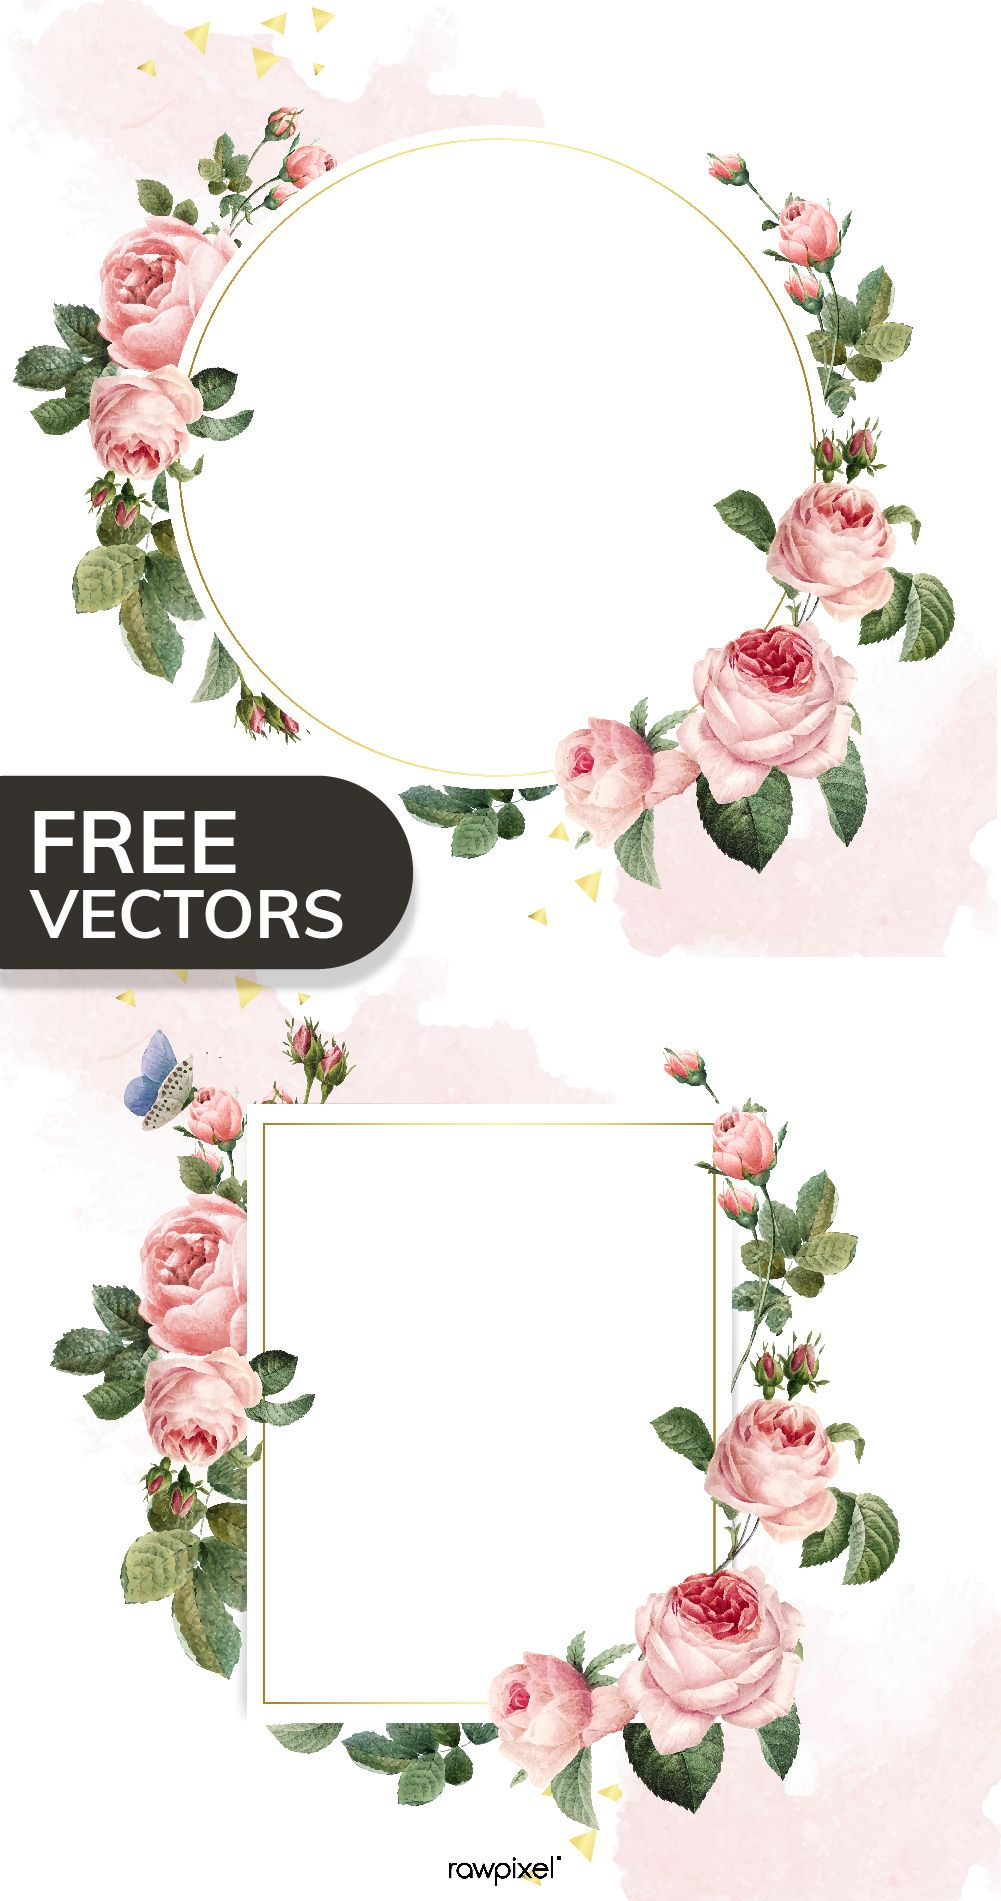 Download This Cool Free Set Of Floral Frame Vectors And Many More Mockups Vectors Illustrations And Stock Photos Floral Border Design Flower Frame Floral